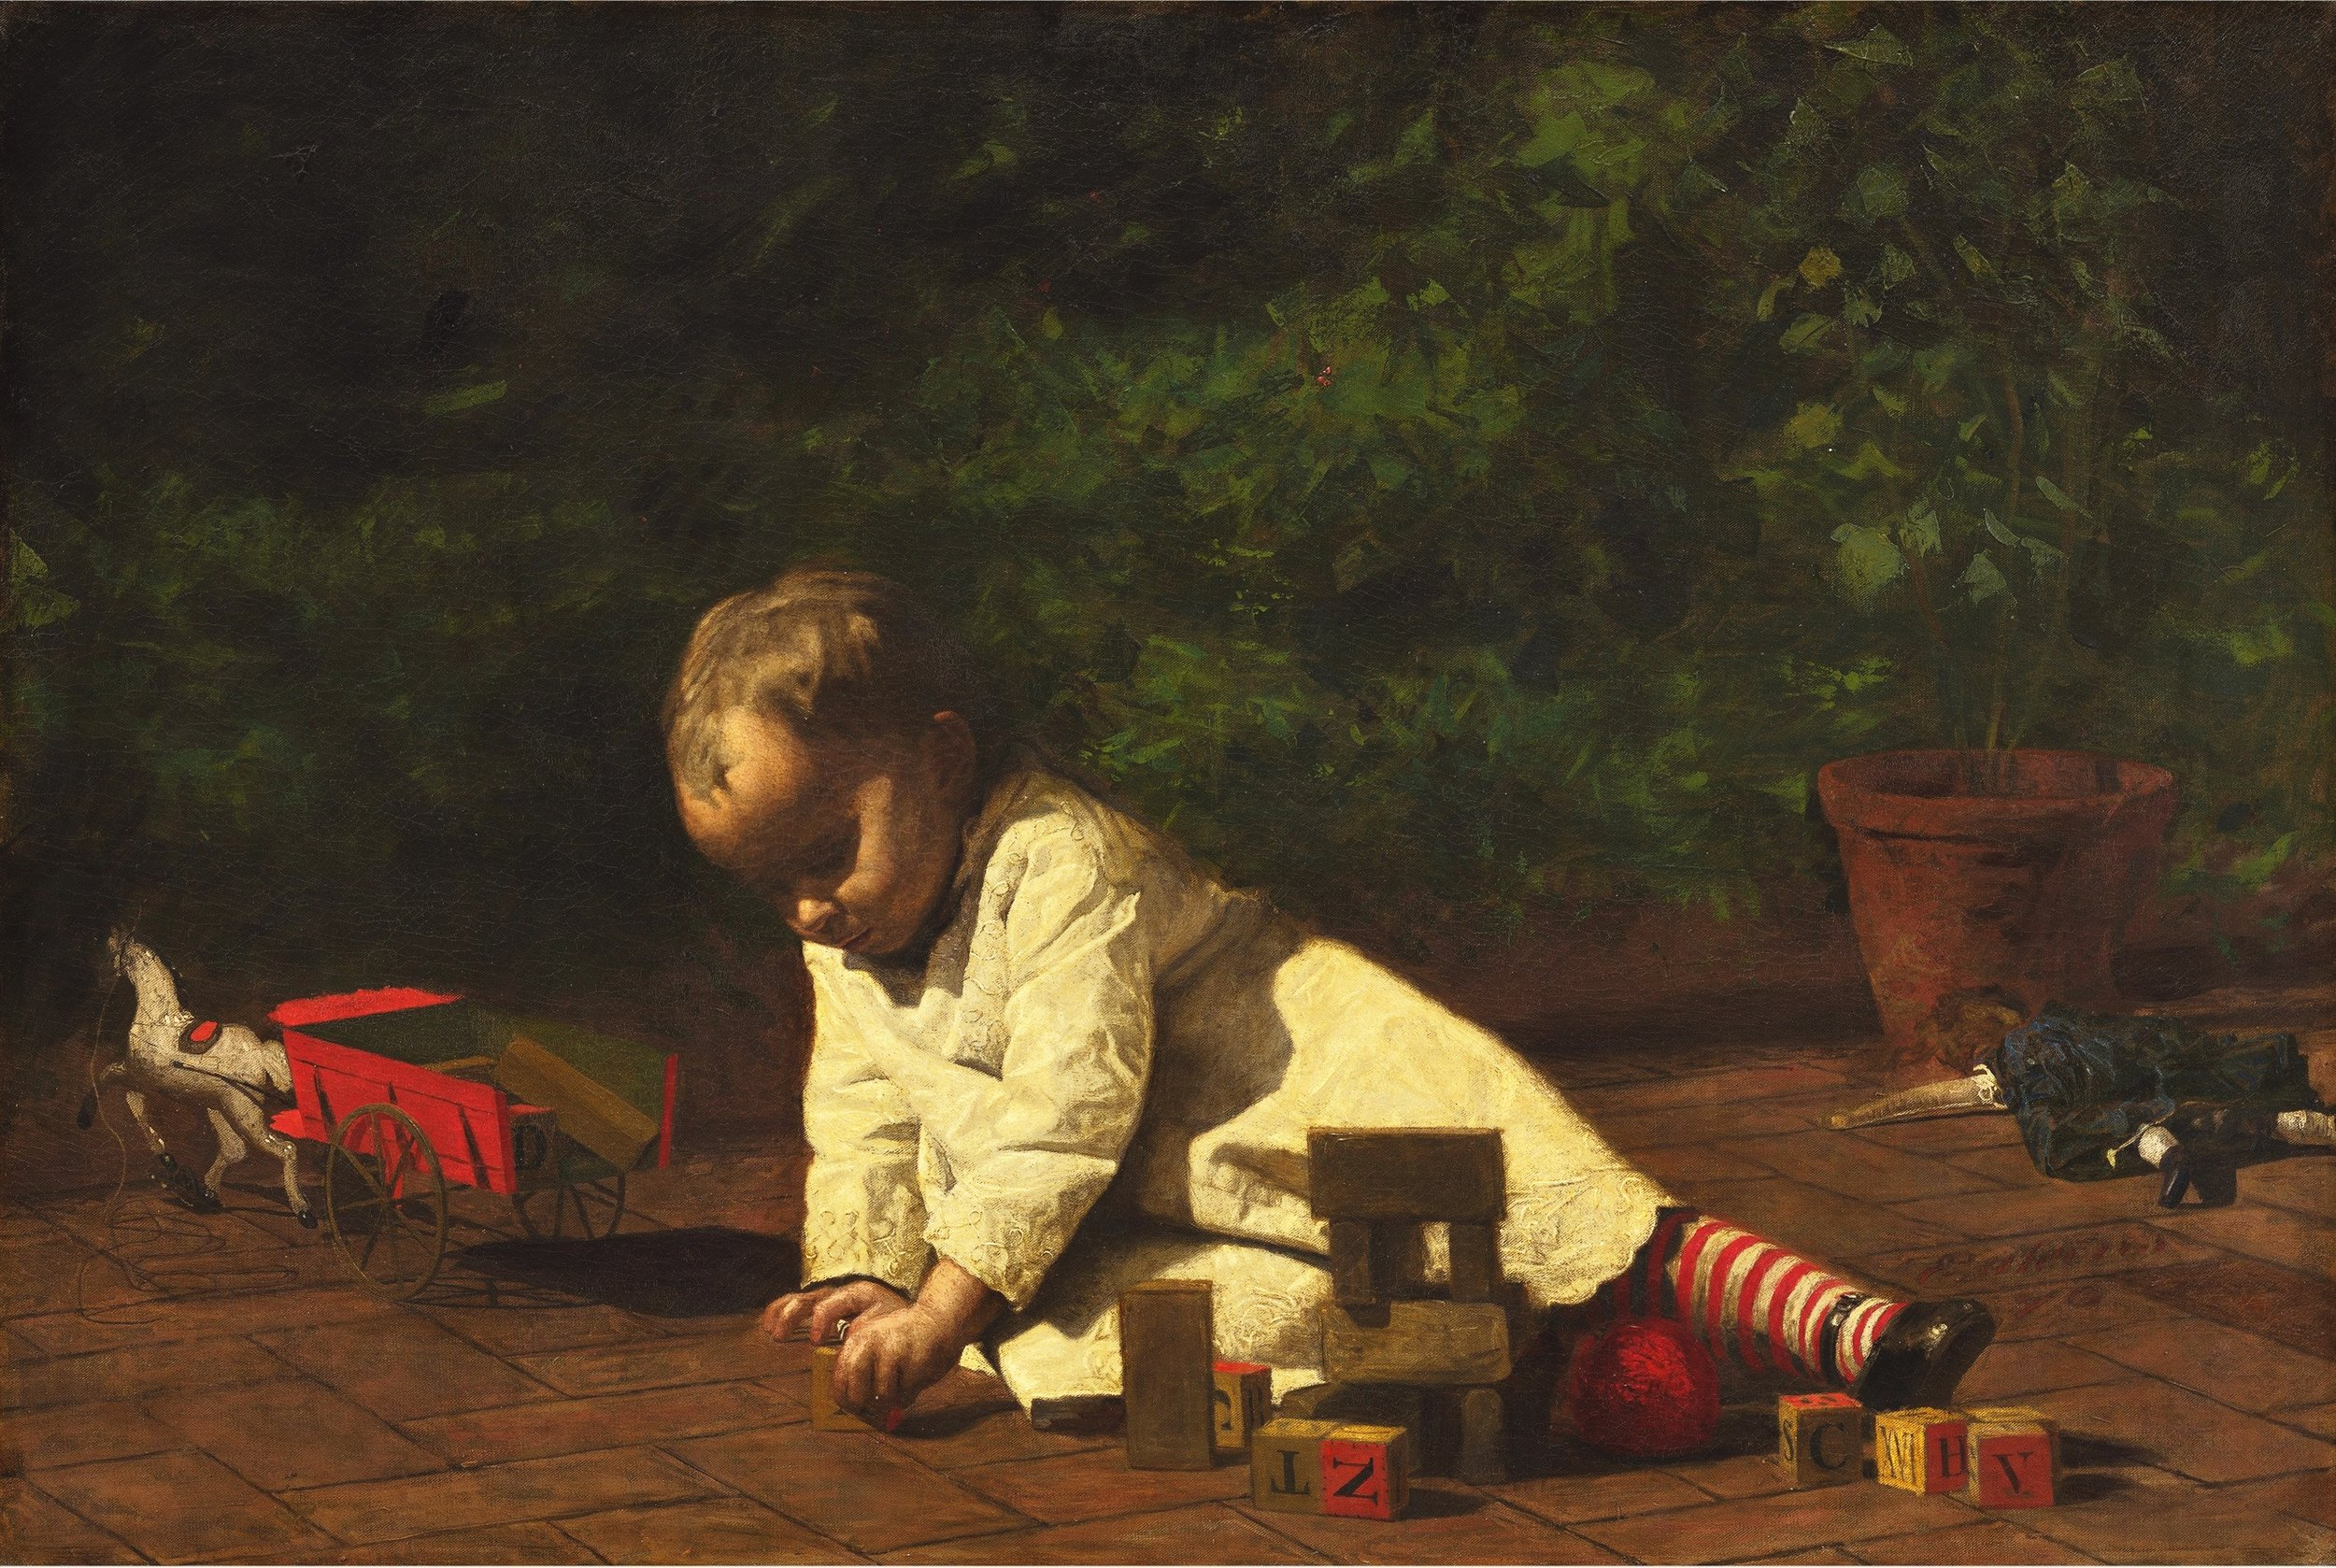 Thomas_Eakins_-_Baby_at_Play.jpg